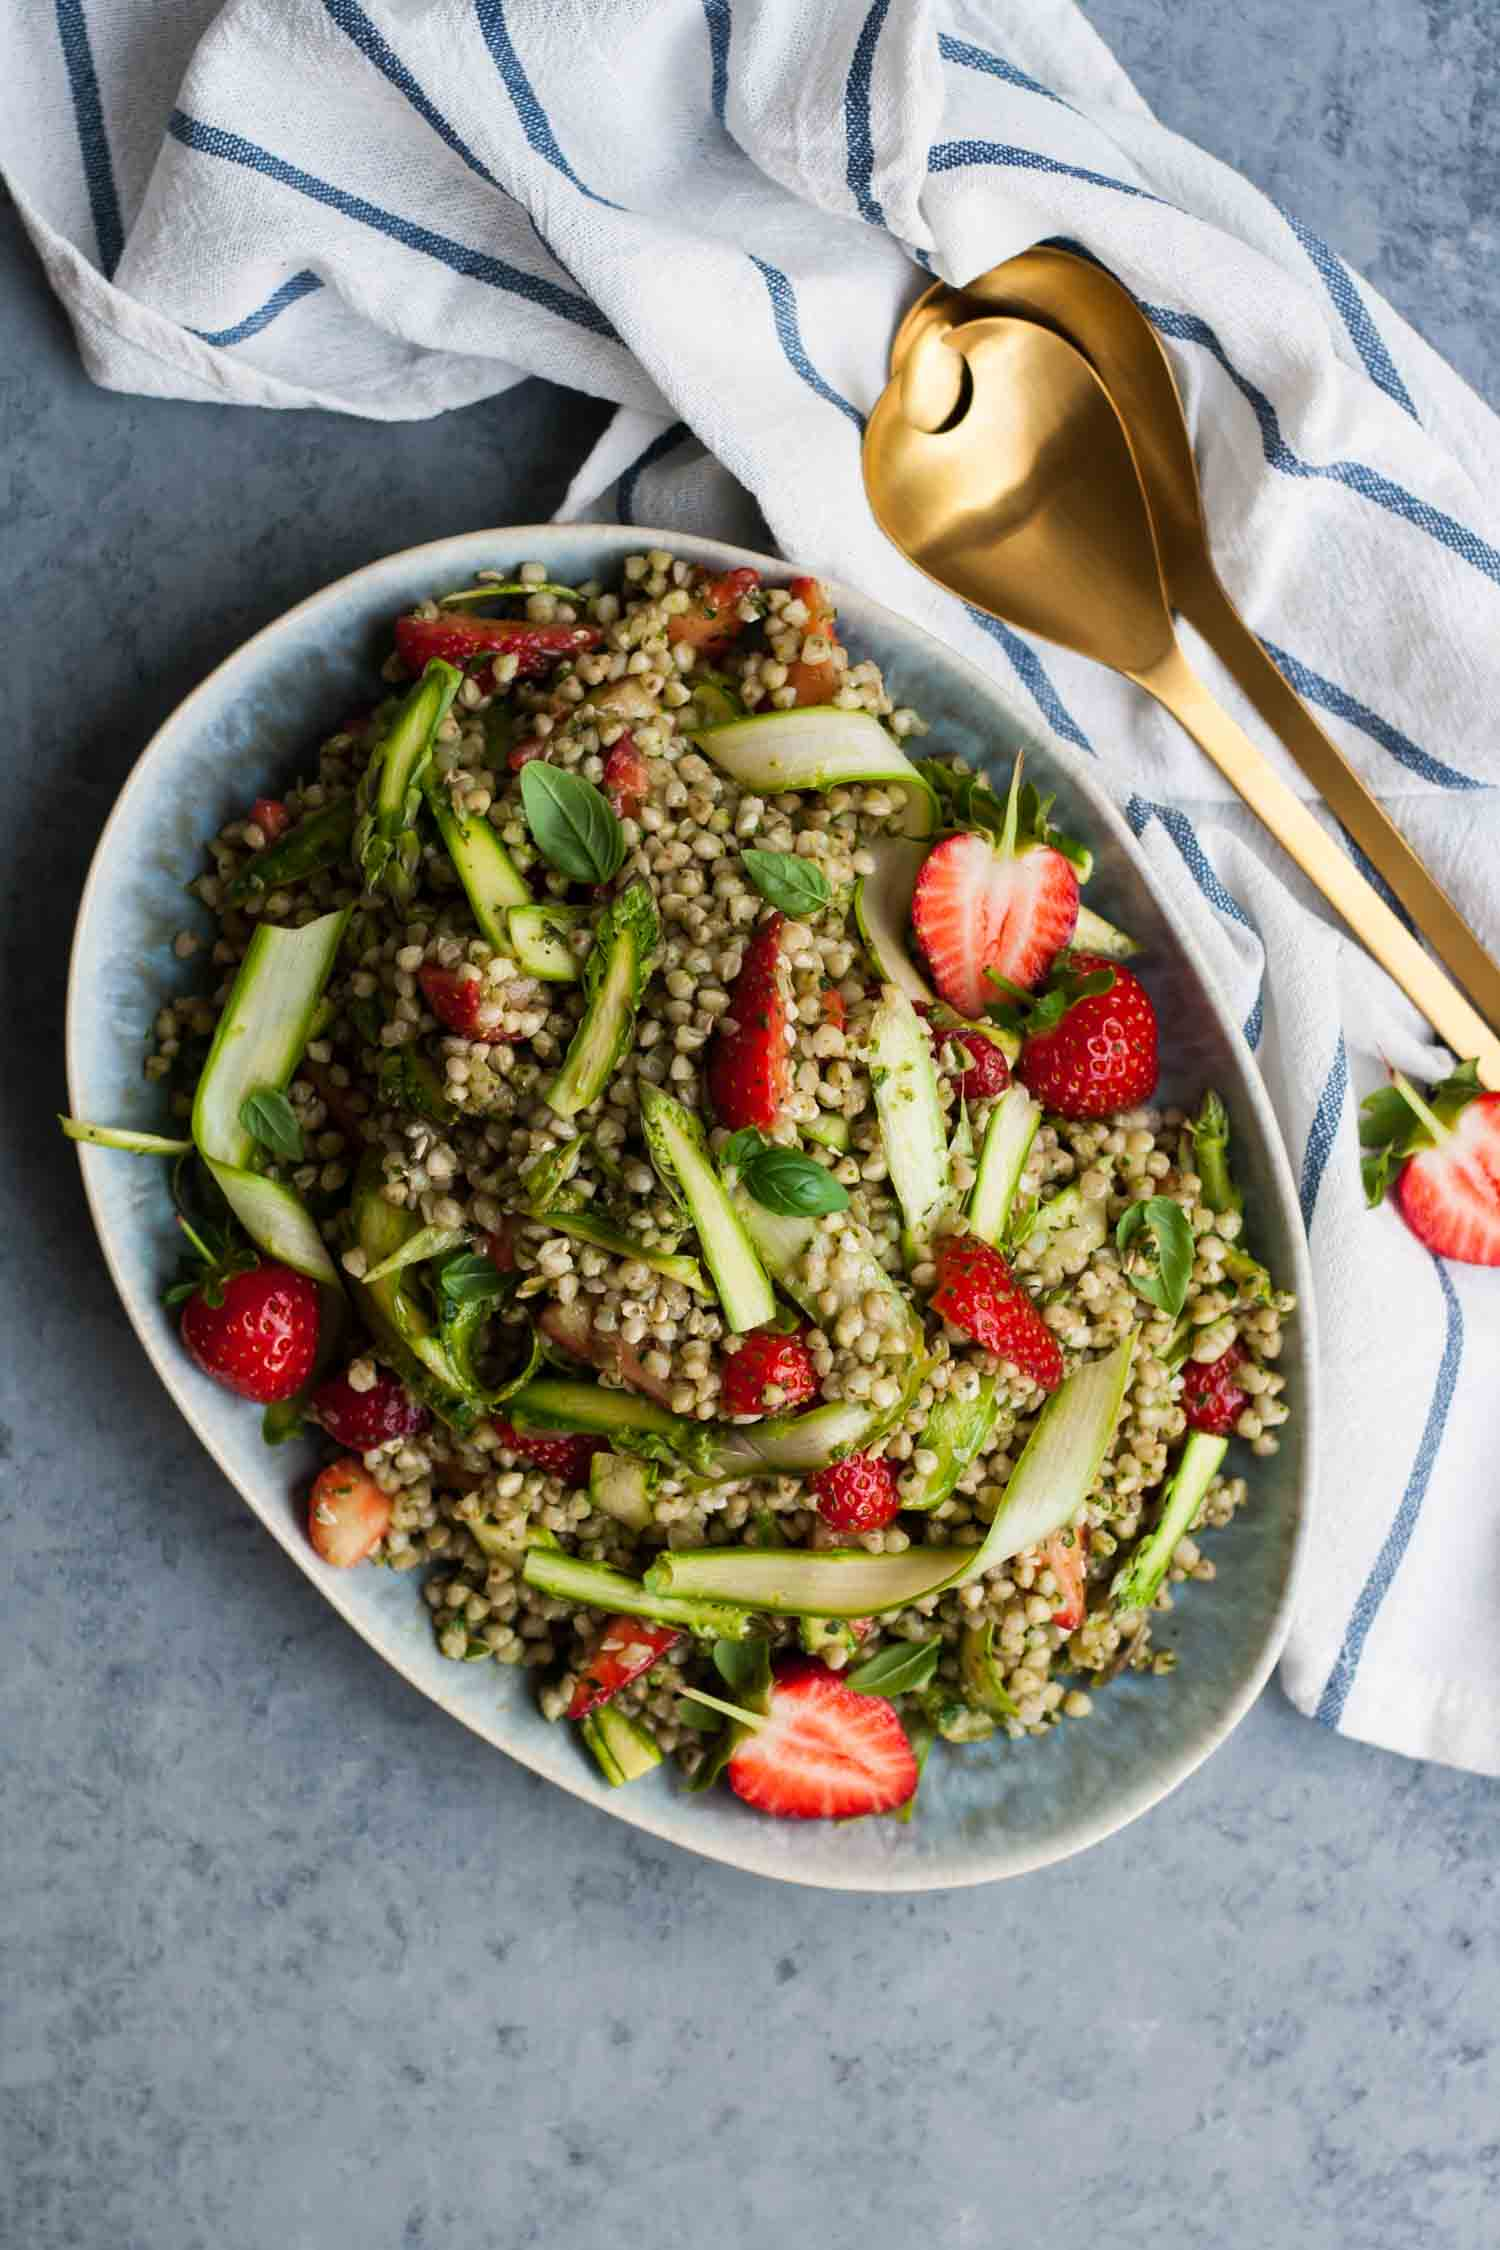 Strawberry Asparagus Buckwheat Salad | Picnics, Barbecues, Side Dishes, Salads, Summer